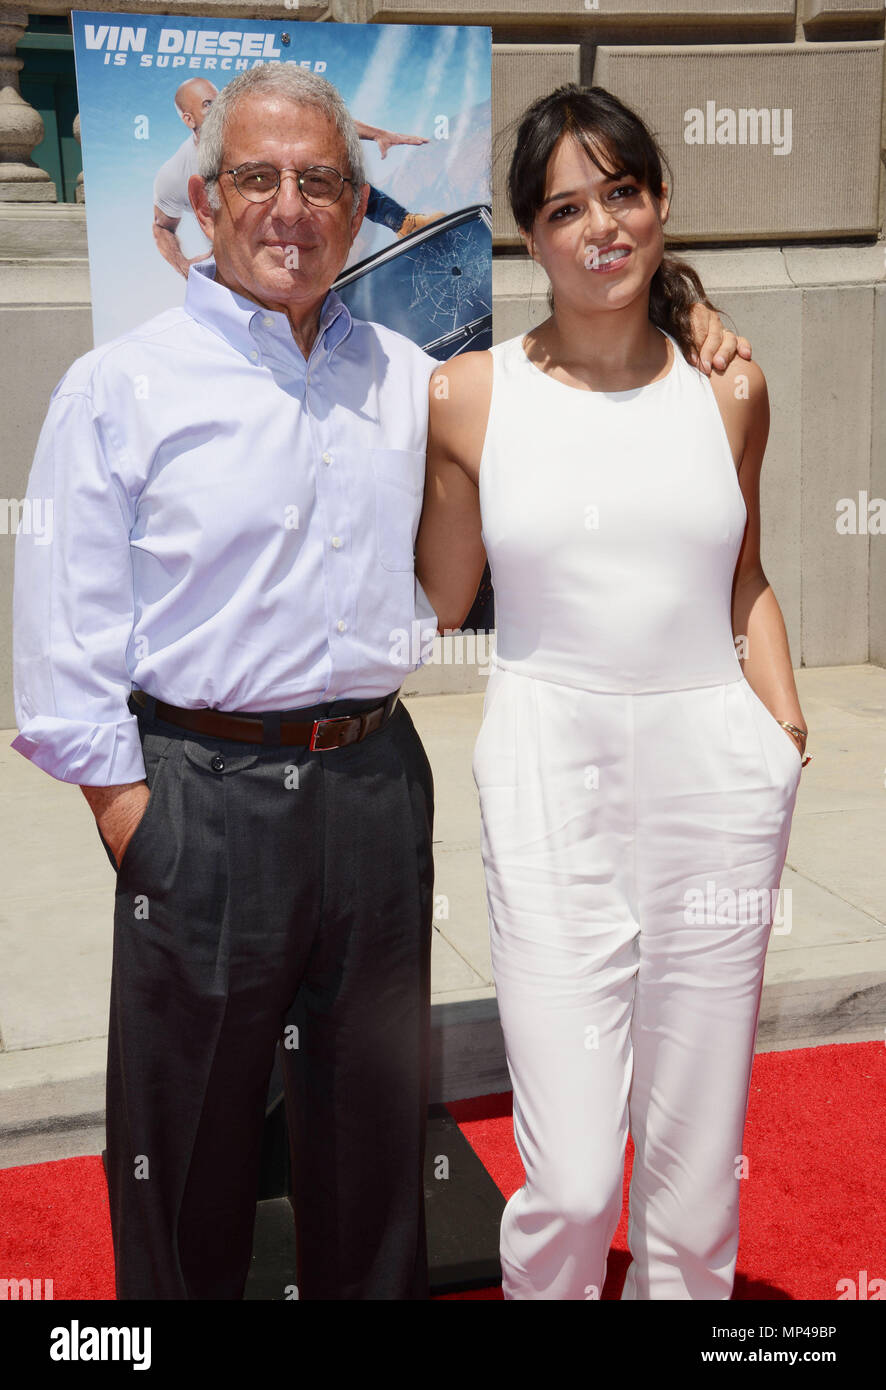 Michelle Rodriguez And Ron Meyer 107 At The Fast Furious Supercharged Ride Opening At The Universal Studios June 23 2015michelle Rodriguez And Ron Meyer 107 Red Carpet Event Vertical